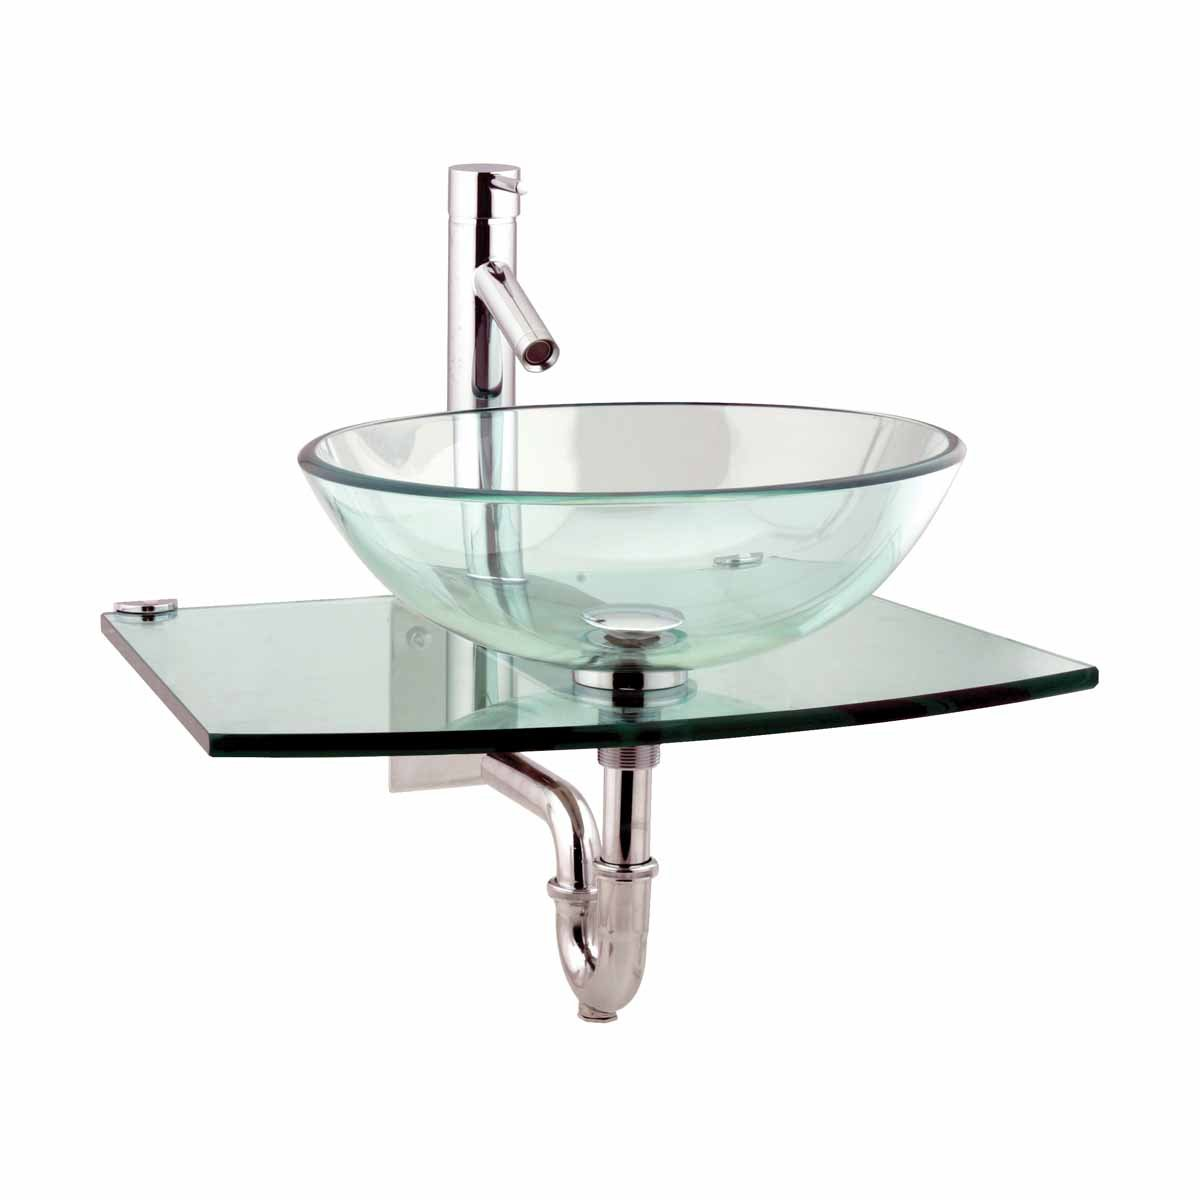 Halo Clear Tempered Glass Vessel Sink Complete Set With Chrome Faucet Drain Wall Mount Stainless Steel Unique Modern by Renovator's Supply